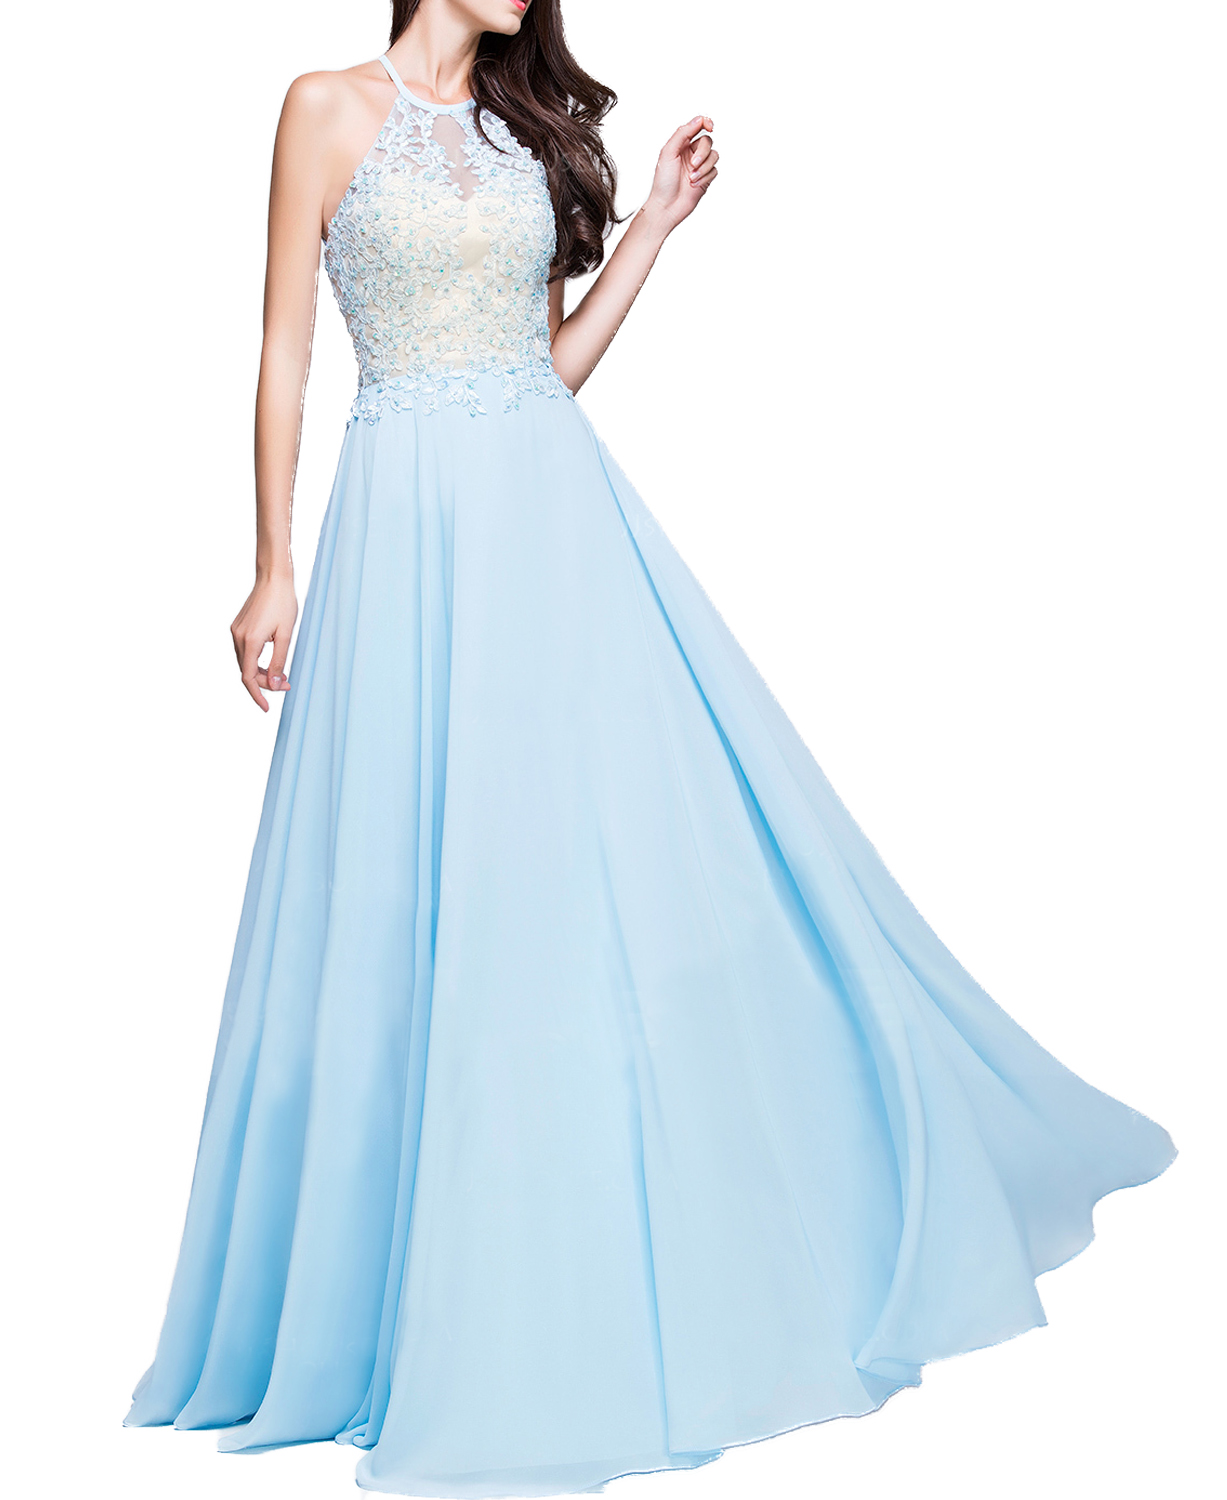 W157 Halter New Fashion Light Blue Evening Gowns,Chamring Lady Prom ...